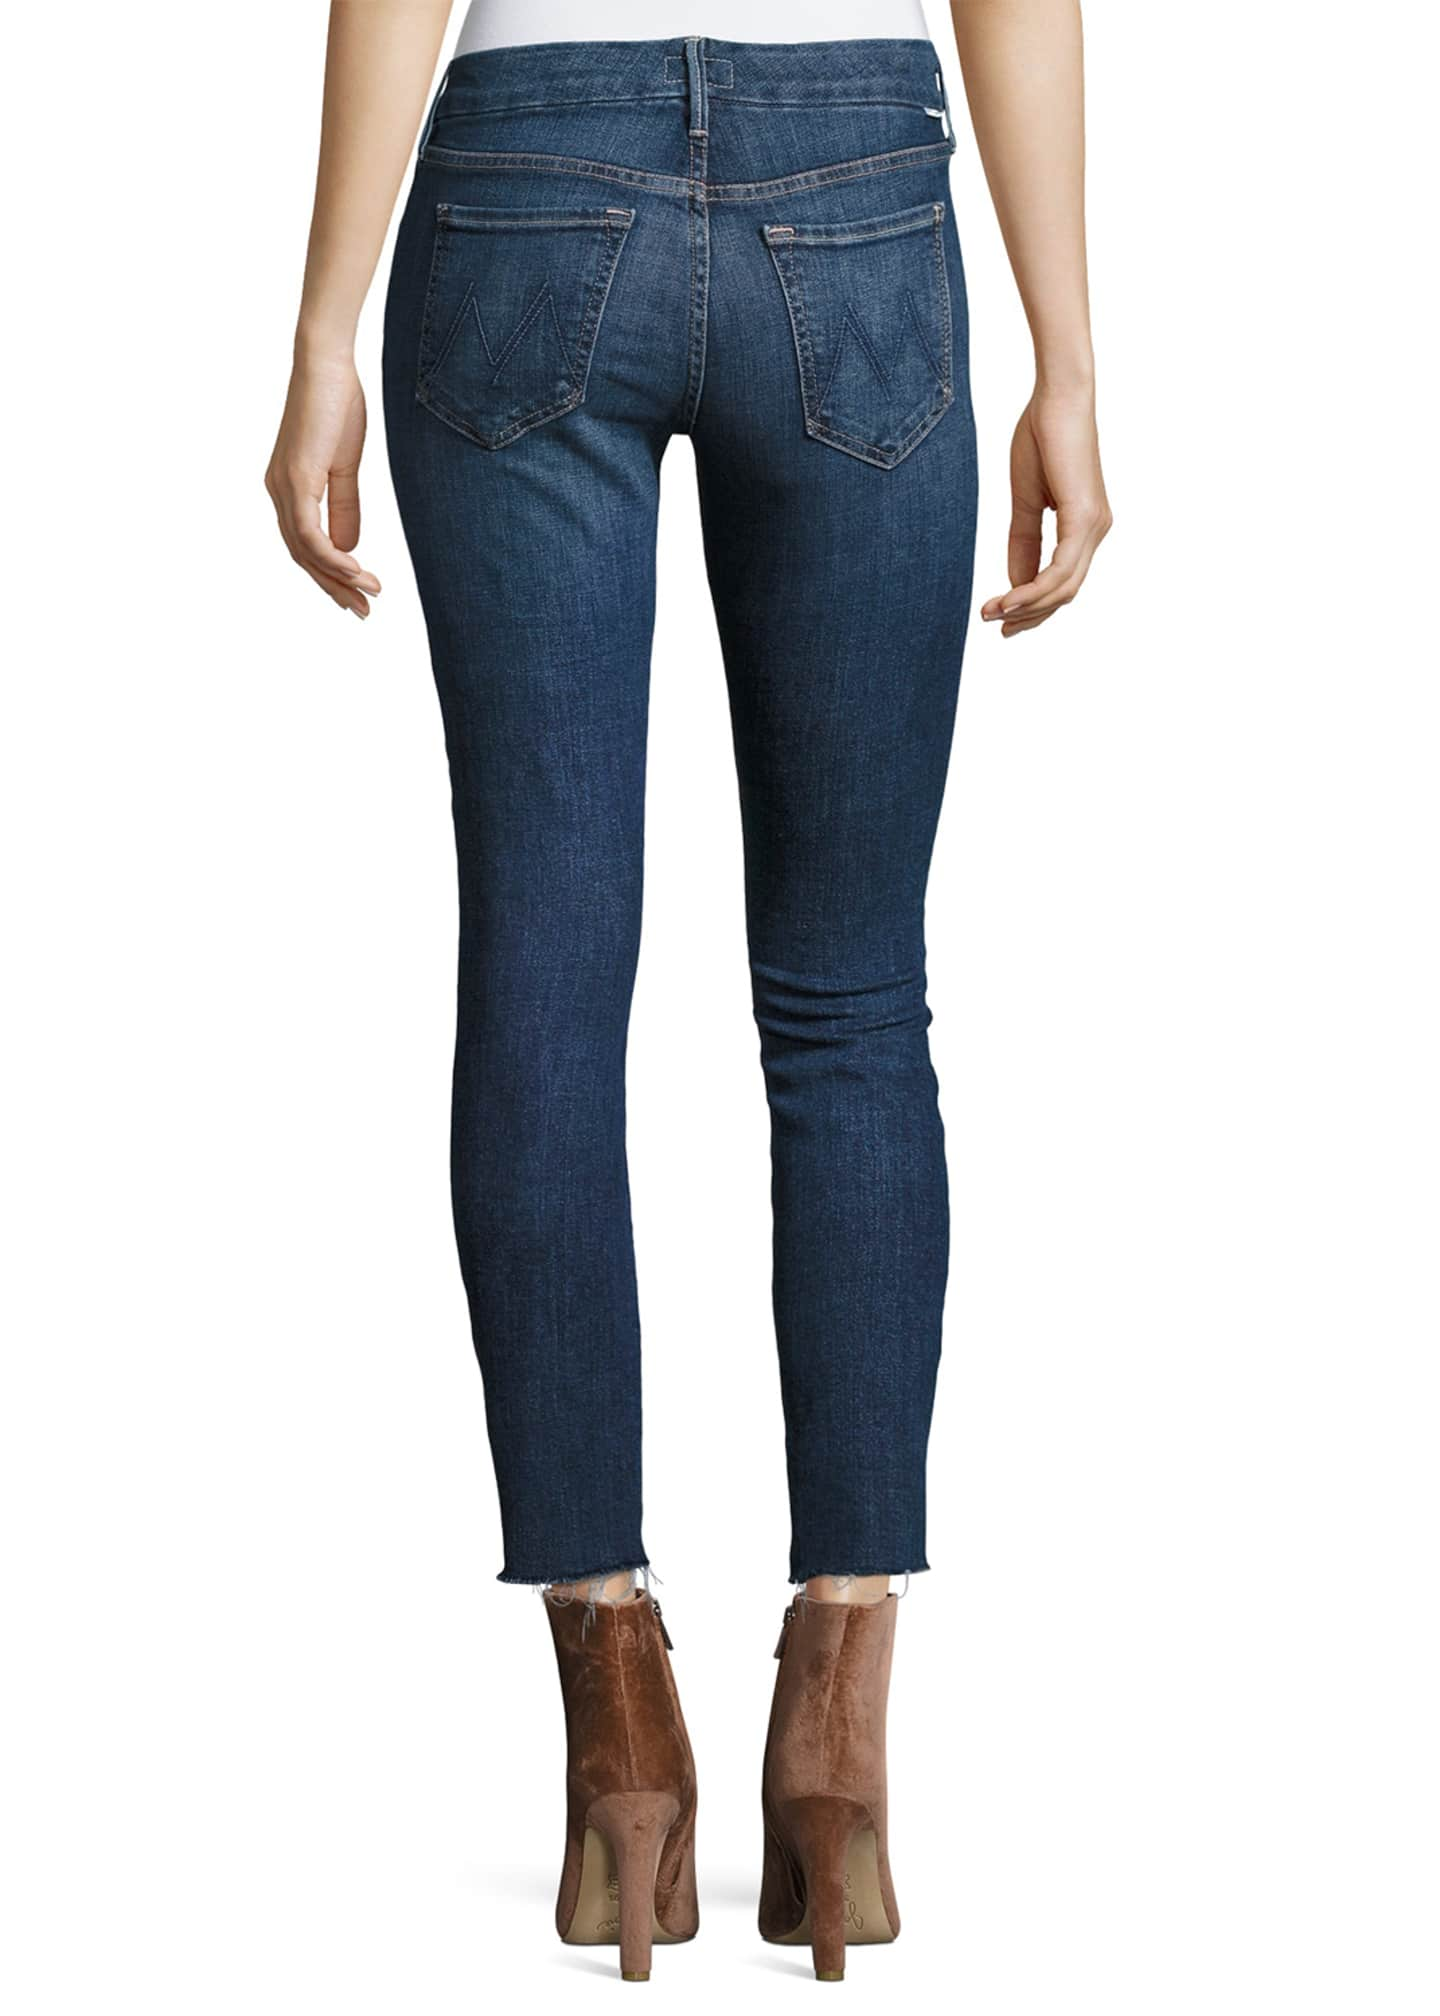 Image 2 of 3: The Looker Ankle Fray Girl-Crush Denim Jeans